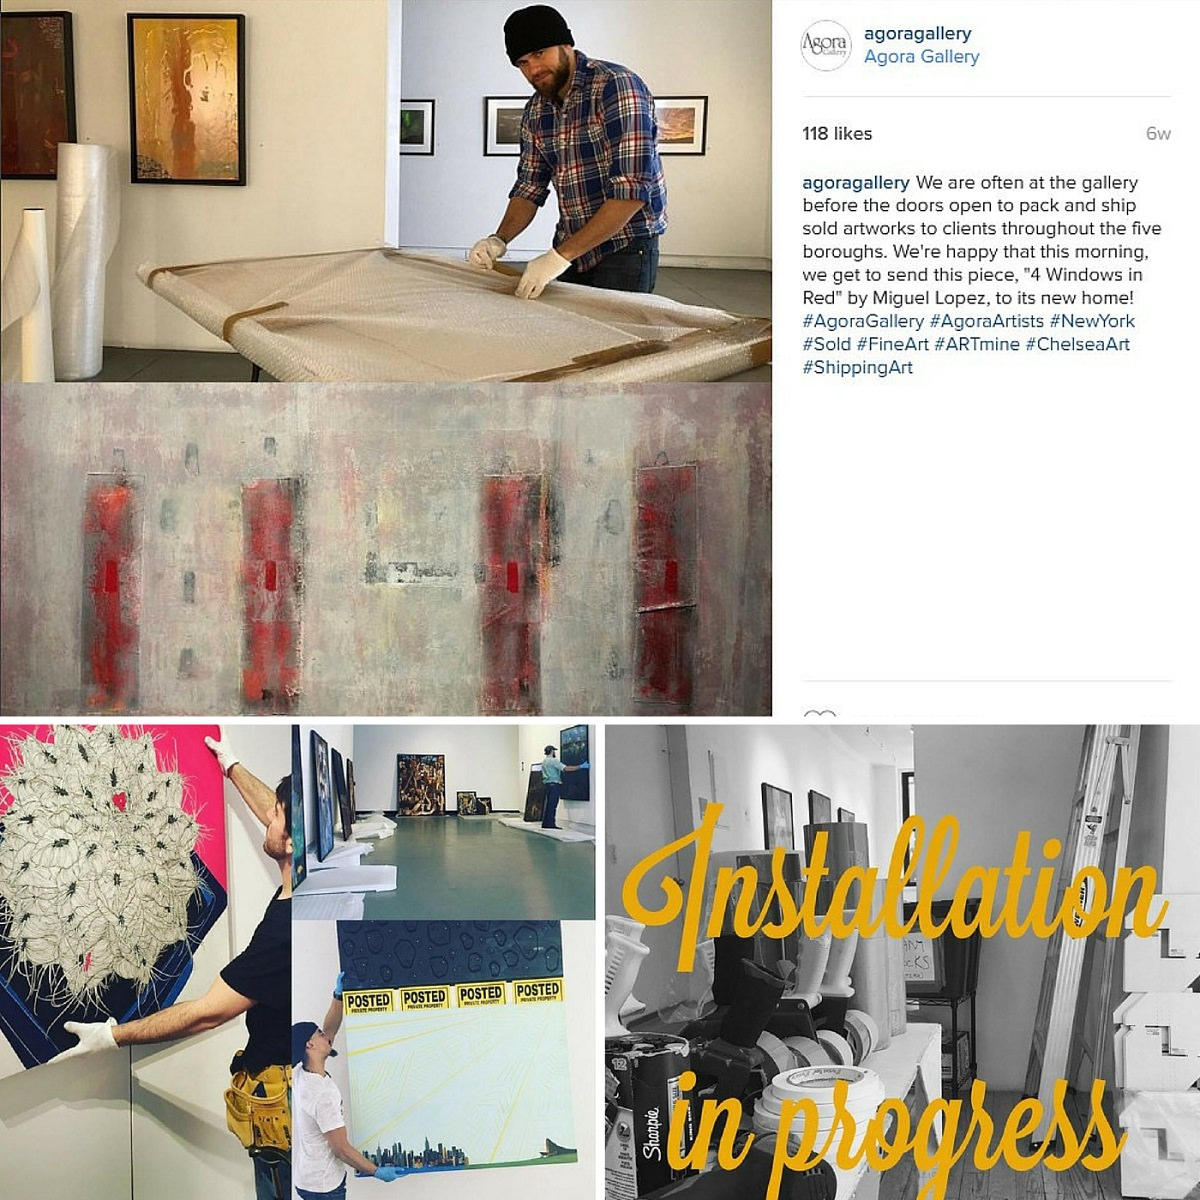 How To Promote Your Art On Instagram Agora Gallery Advice Blog